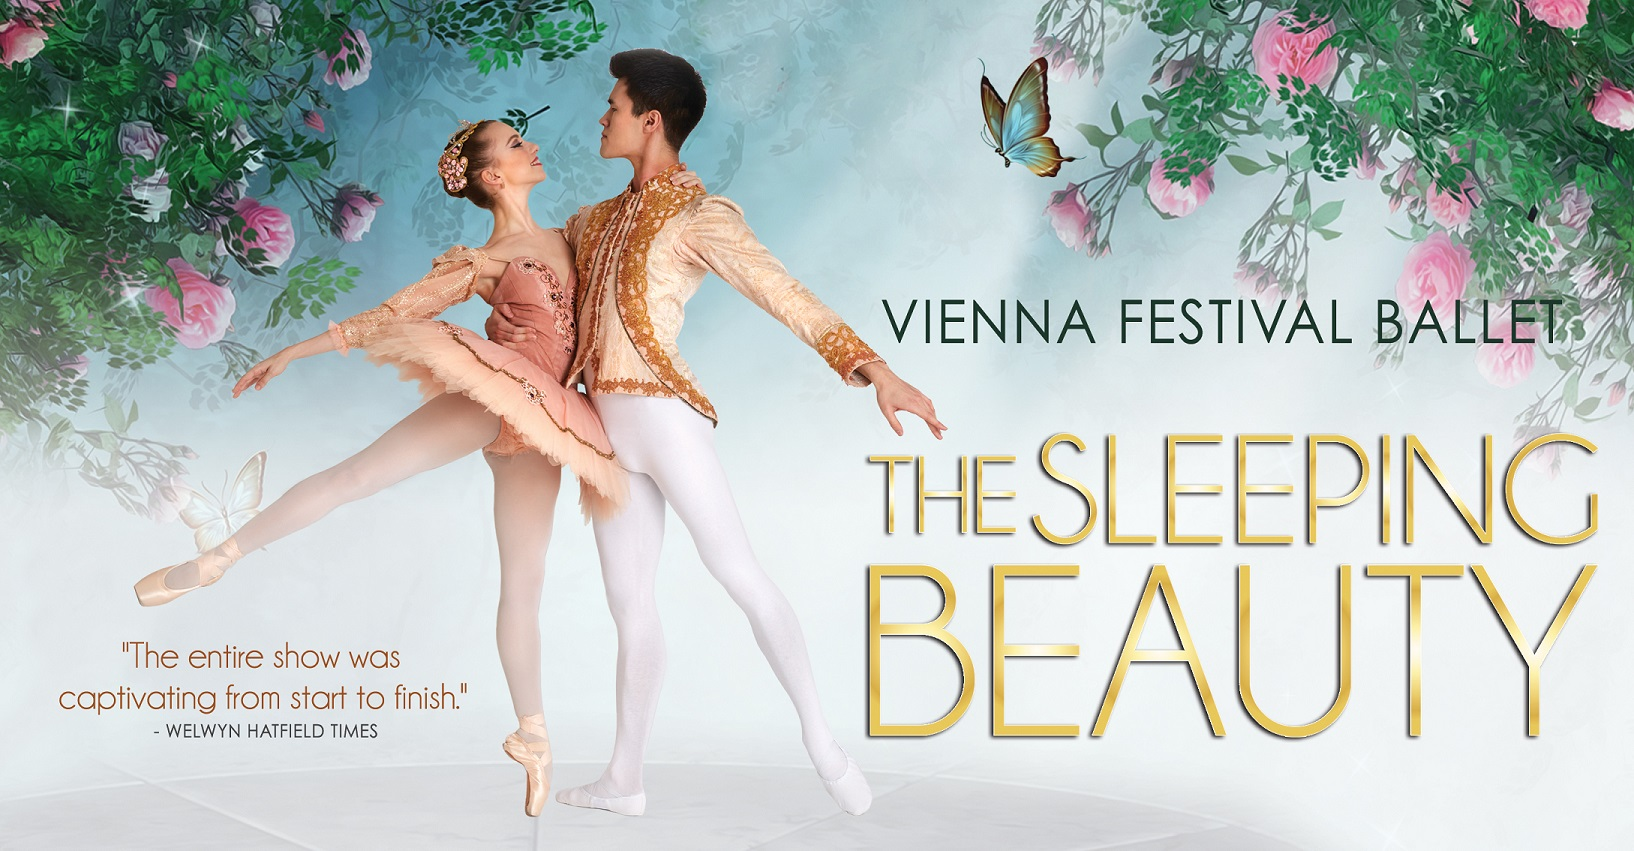 Sleeping Beauty - Vienna Festival Ballet